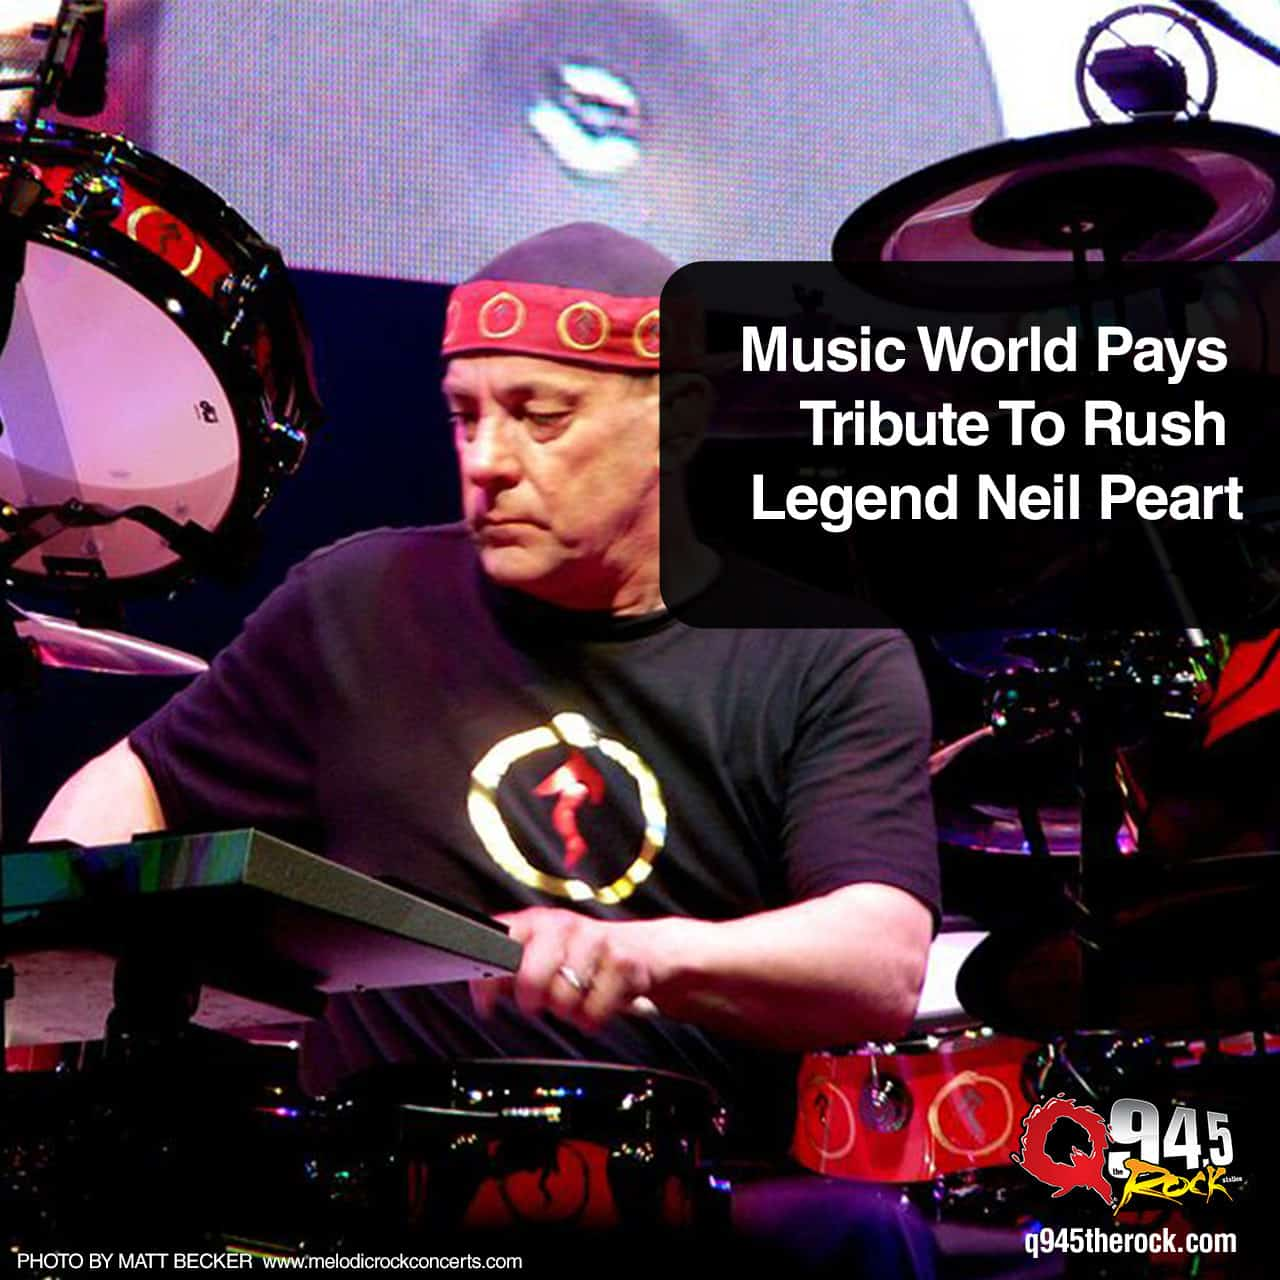 Music World Pays Tribute To Rush Legend Neil Peart 1